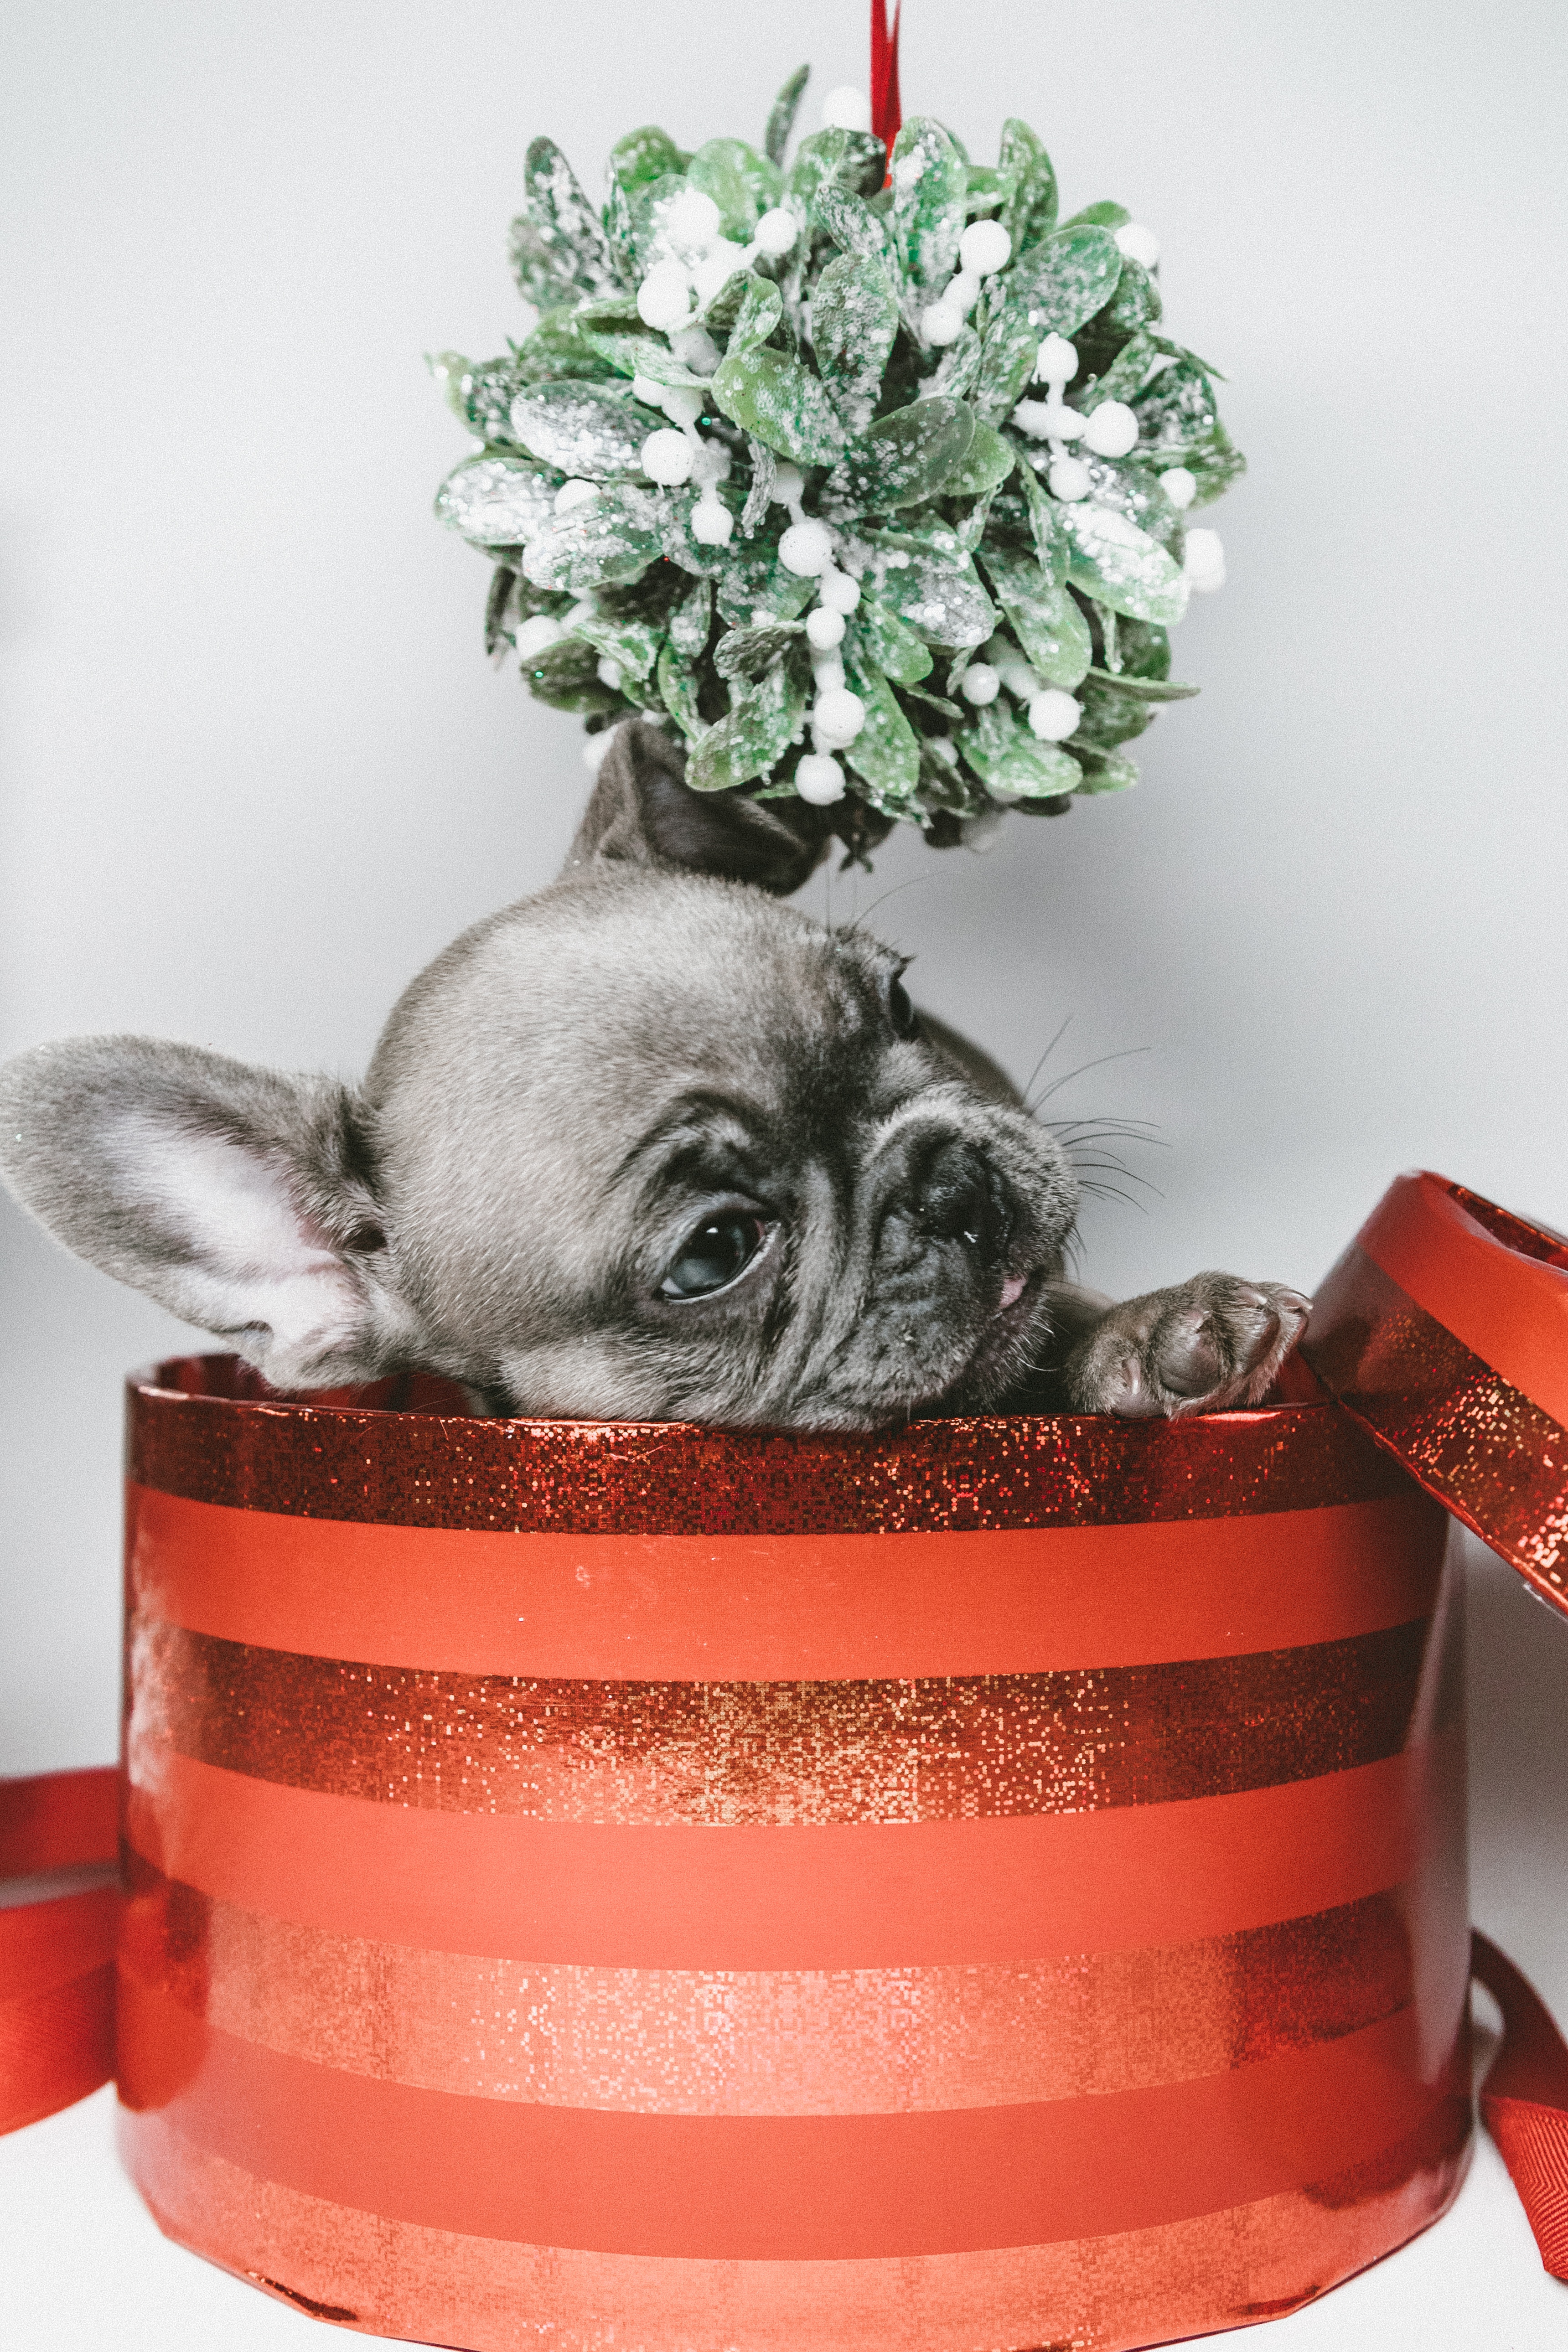 137057 download wallpaper Animals, Puppy, Box, Present, Gift screensavers and pictures for free